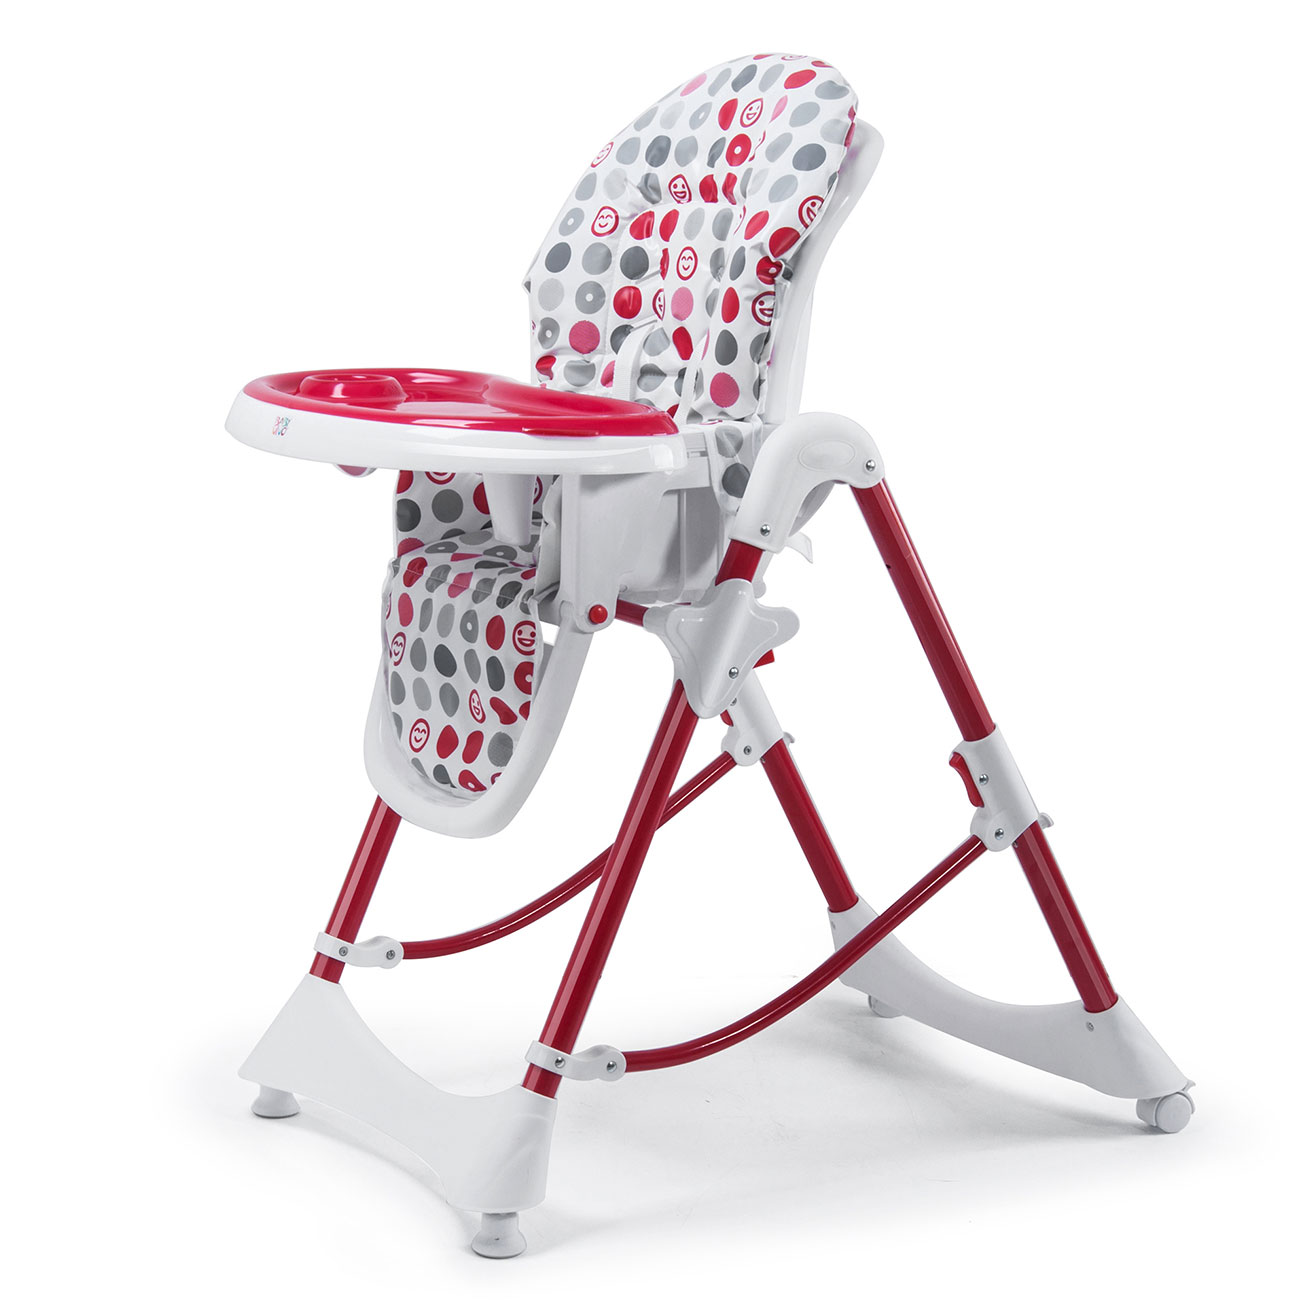 Delicieux Baby Vivo Baby High Chair Infant Feeding Seat   Tippy In Dark Red